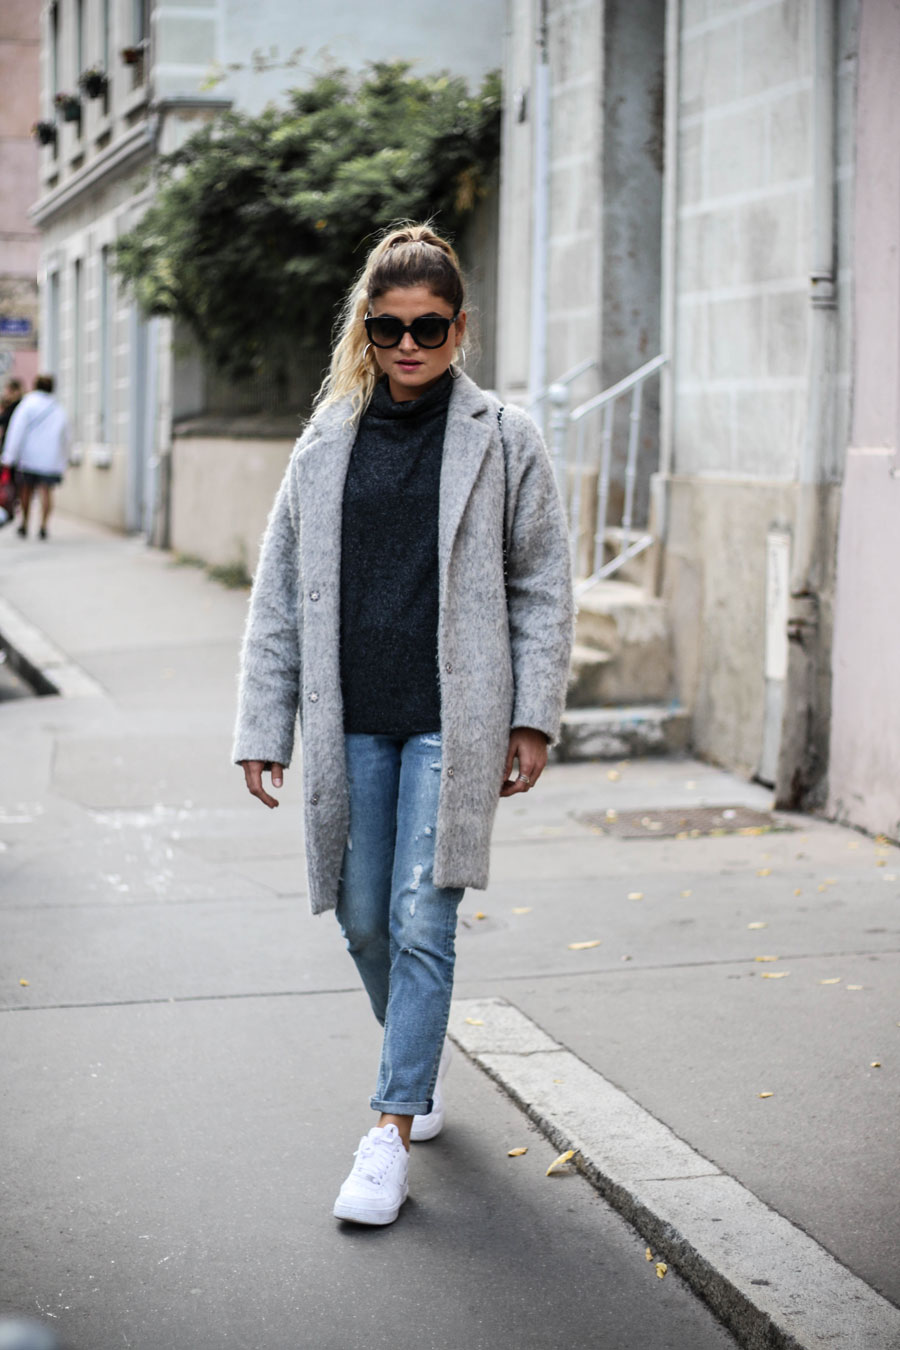 check-out d67e2 63f61 Air Force 1 - Marie and Mood - Blog mode et lifestyle Lyon